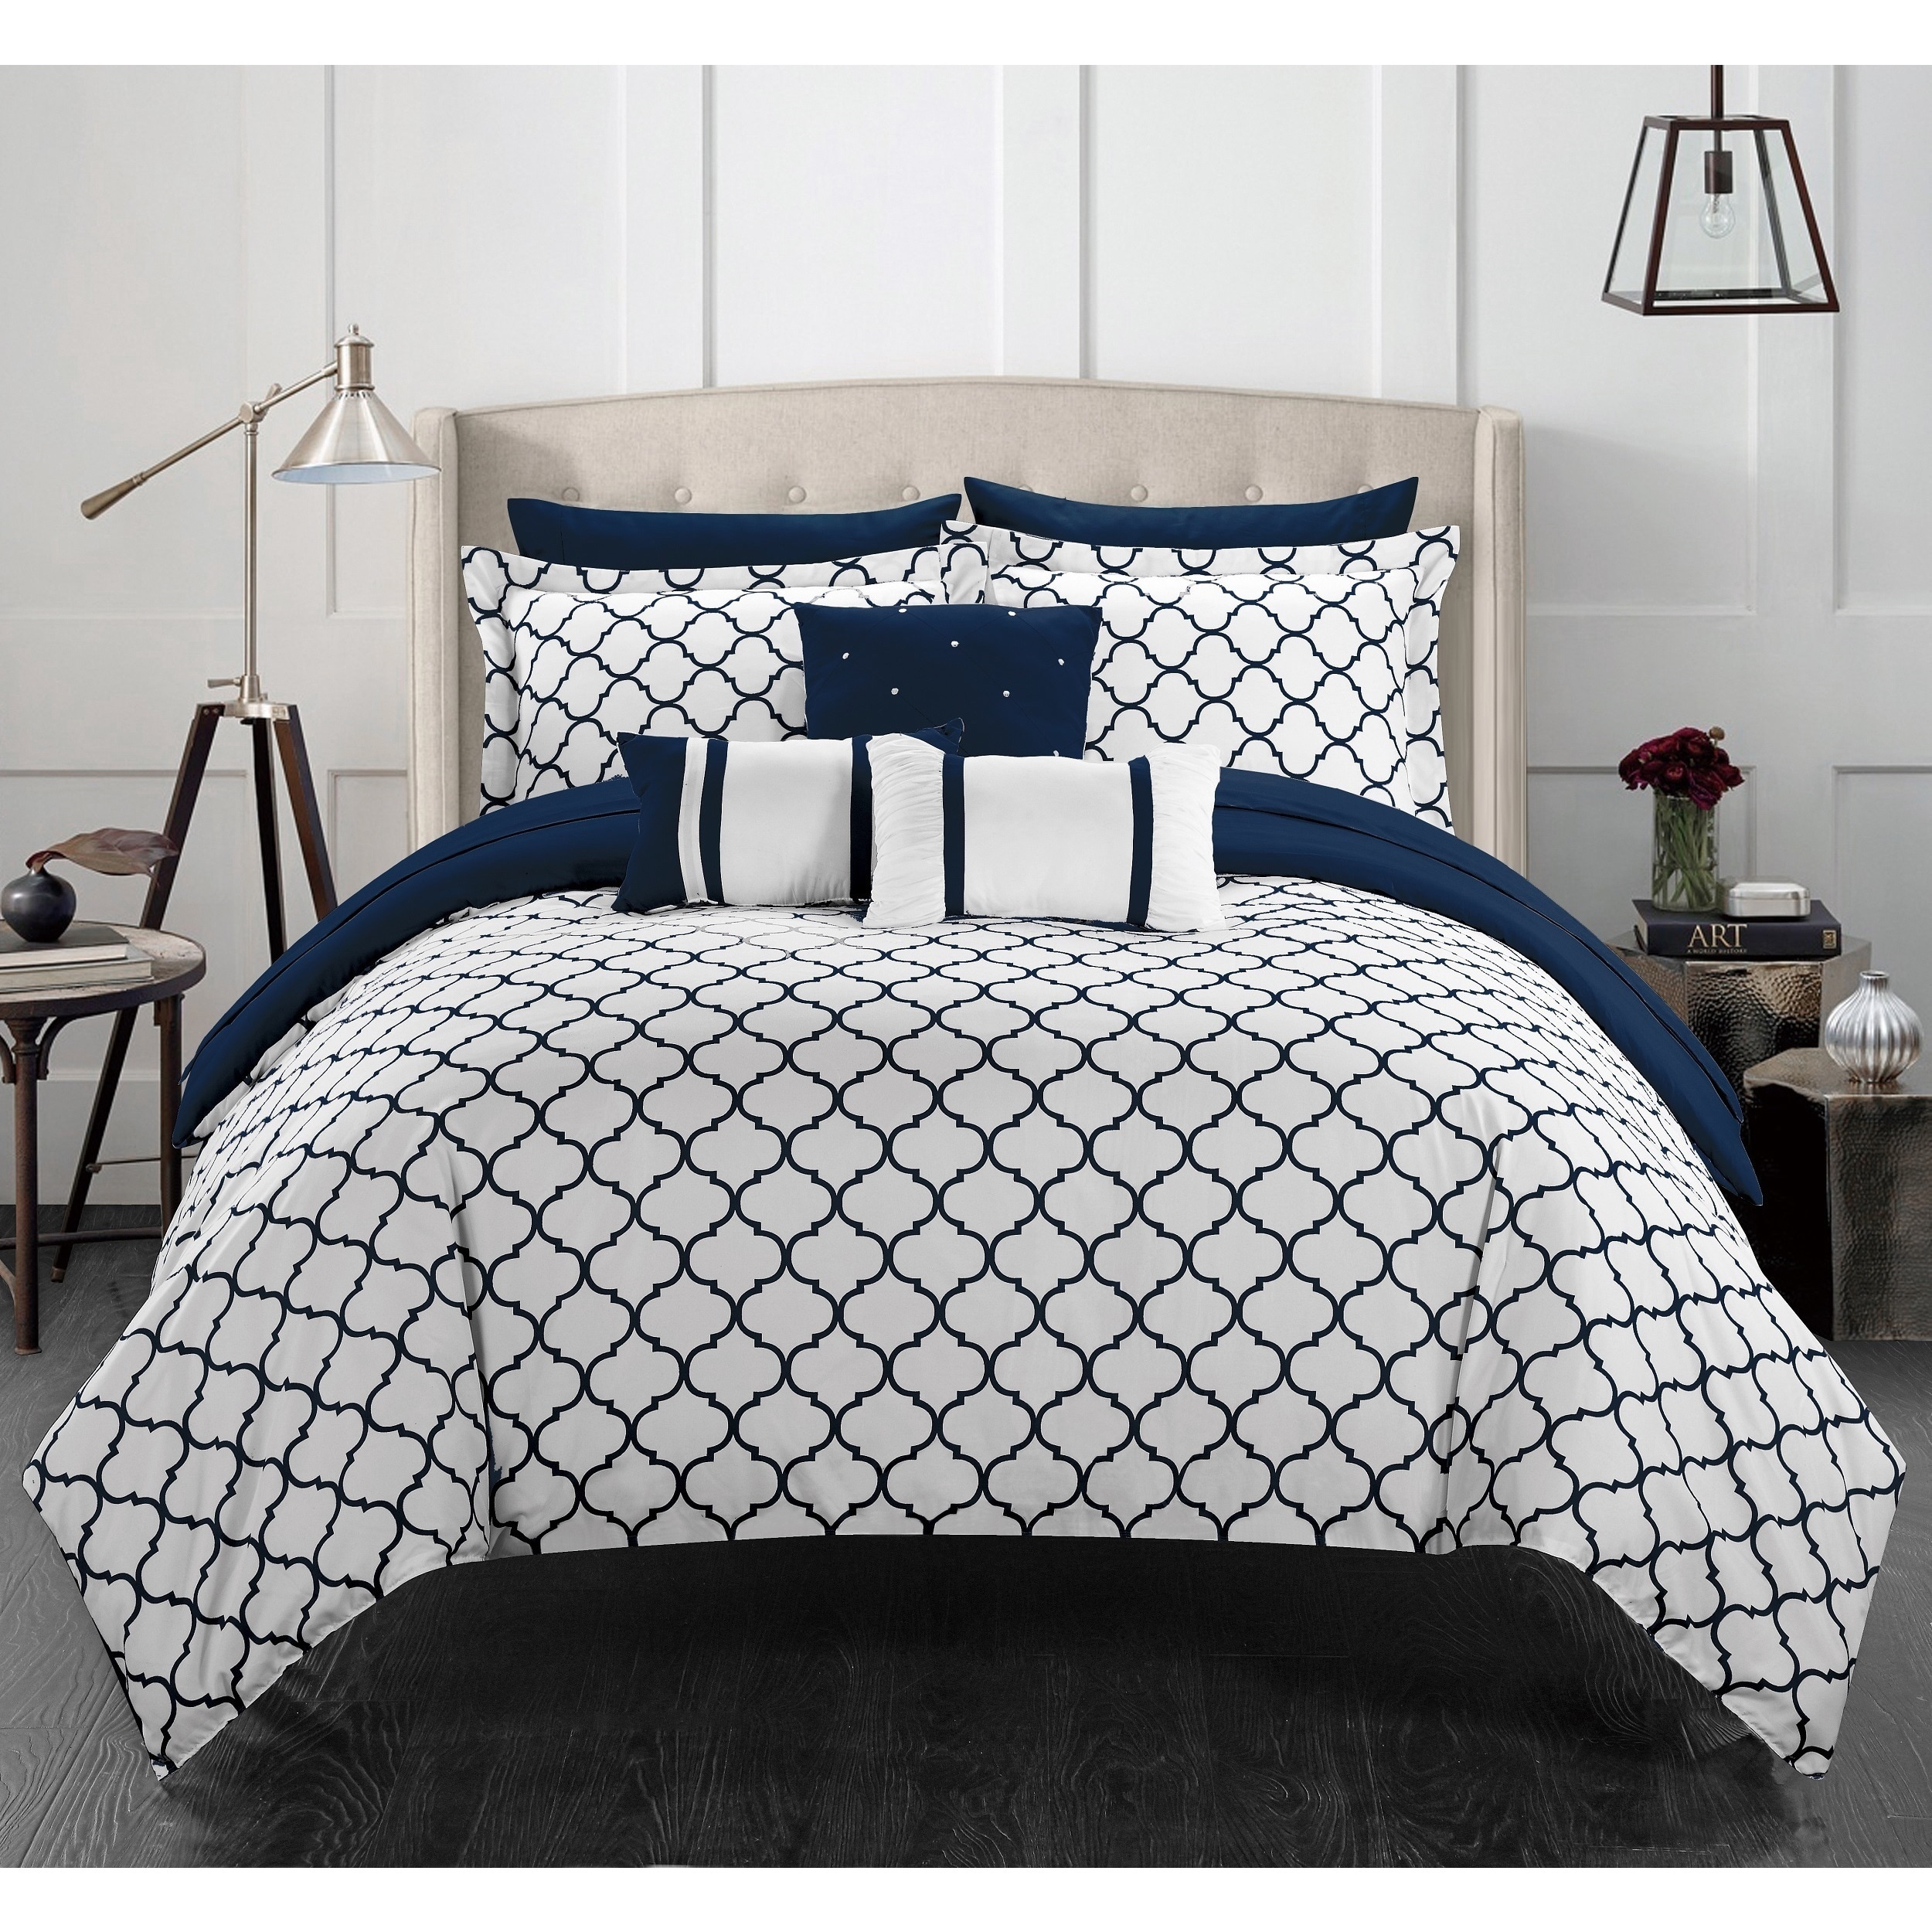 Chic Home Edney Bed in a Bag Navy forter 10 Piece Set Free